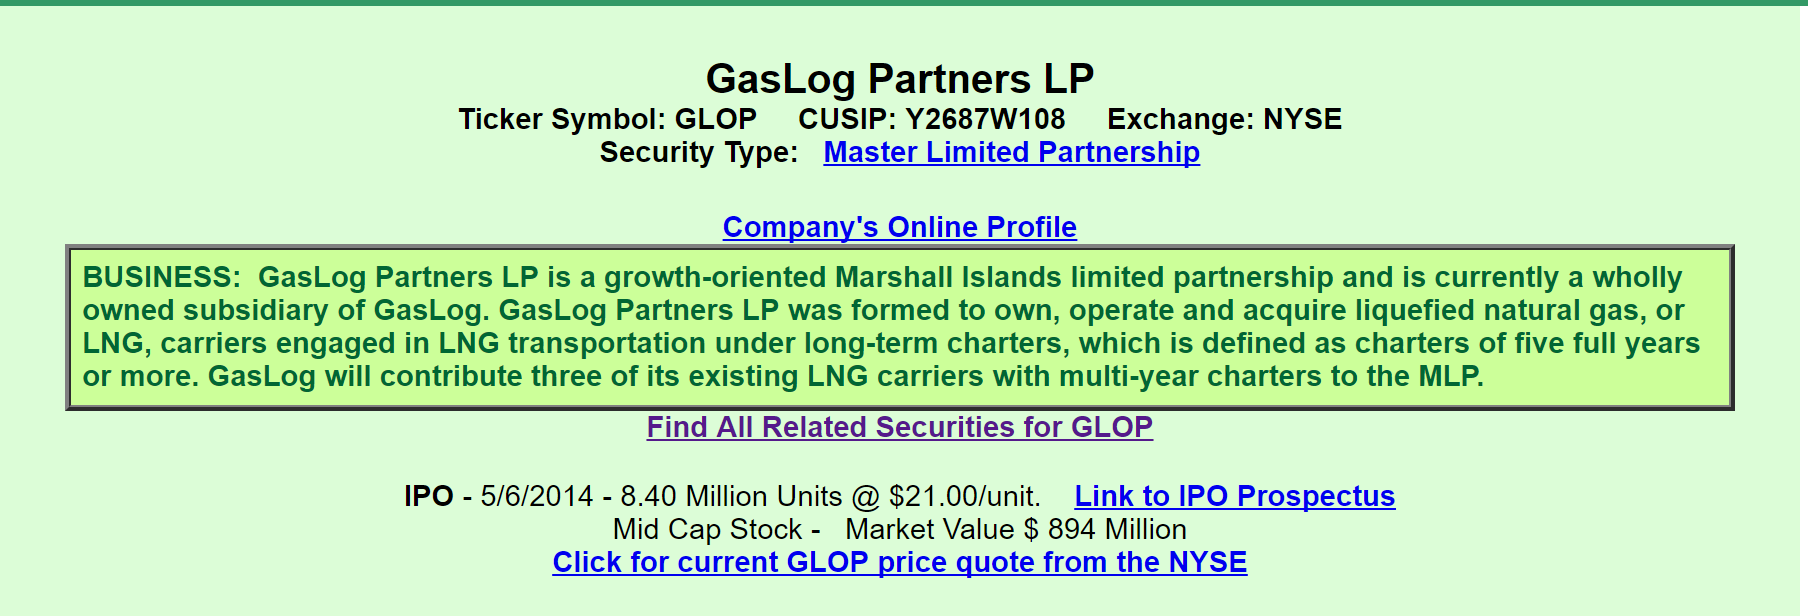 Gaslog partners from the perspective of a preferred investor here we learn that glop is a partnership that ipod 5614 and operates and acquires lng carriers for lng transportation under long term charters of 5 years buycottarizona